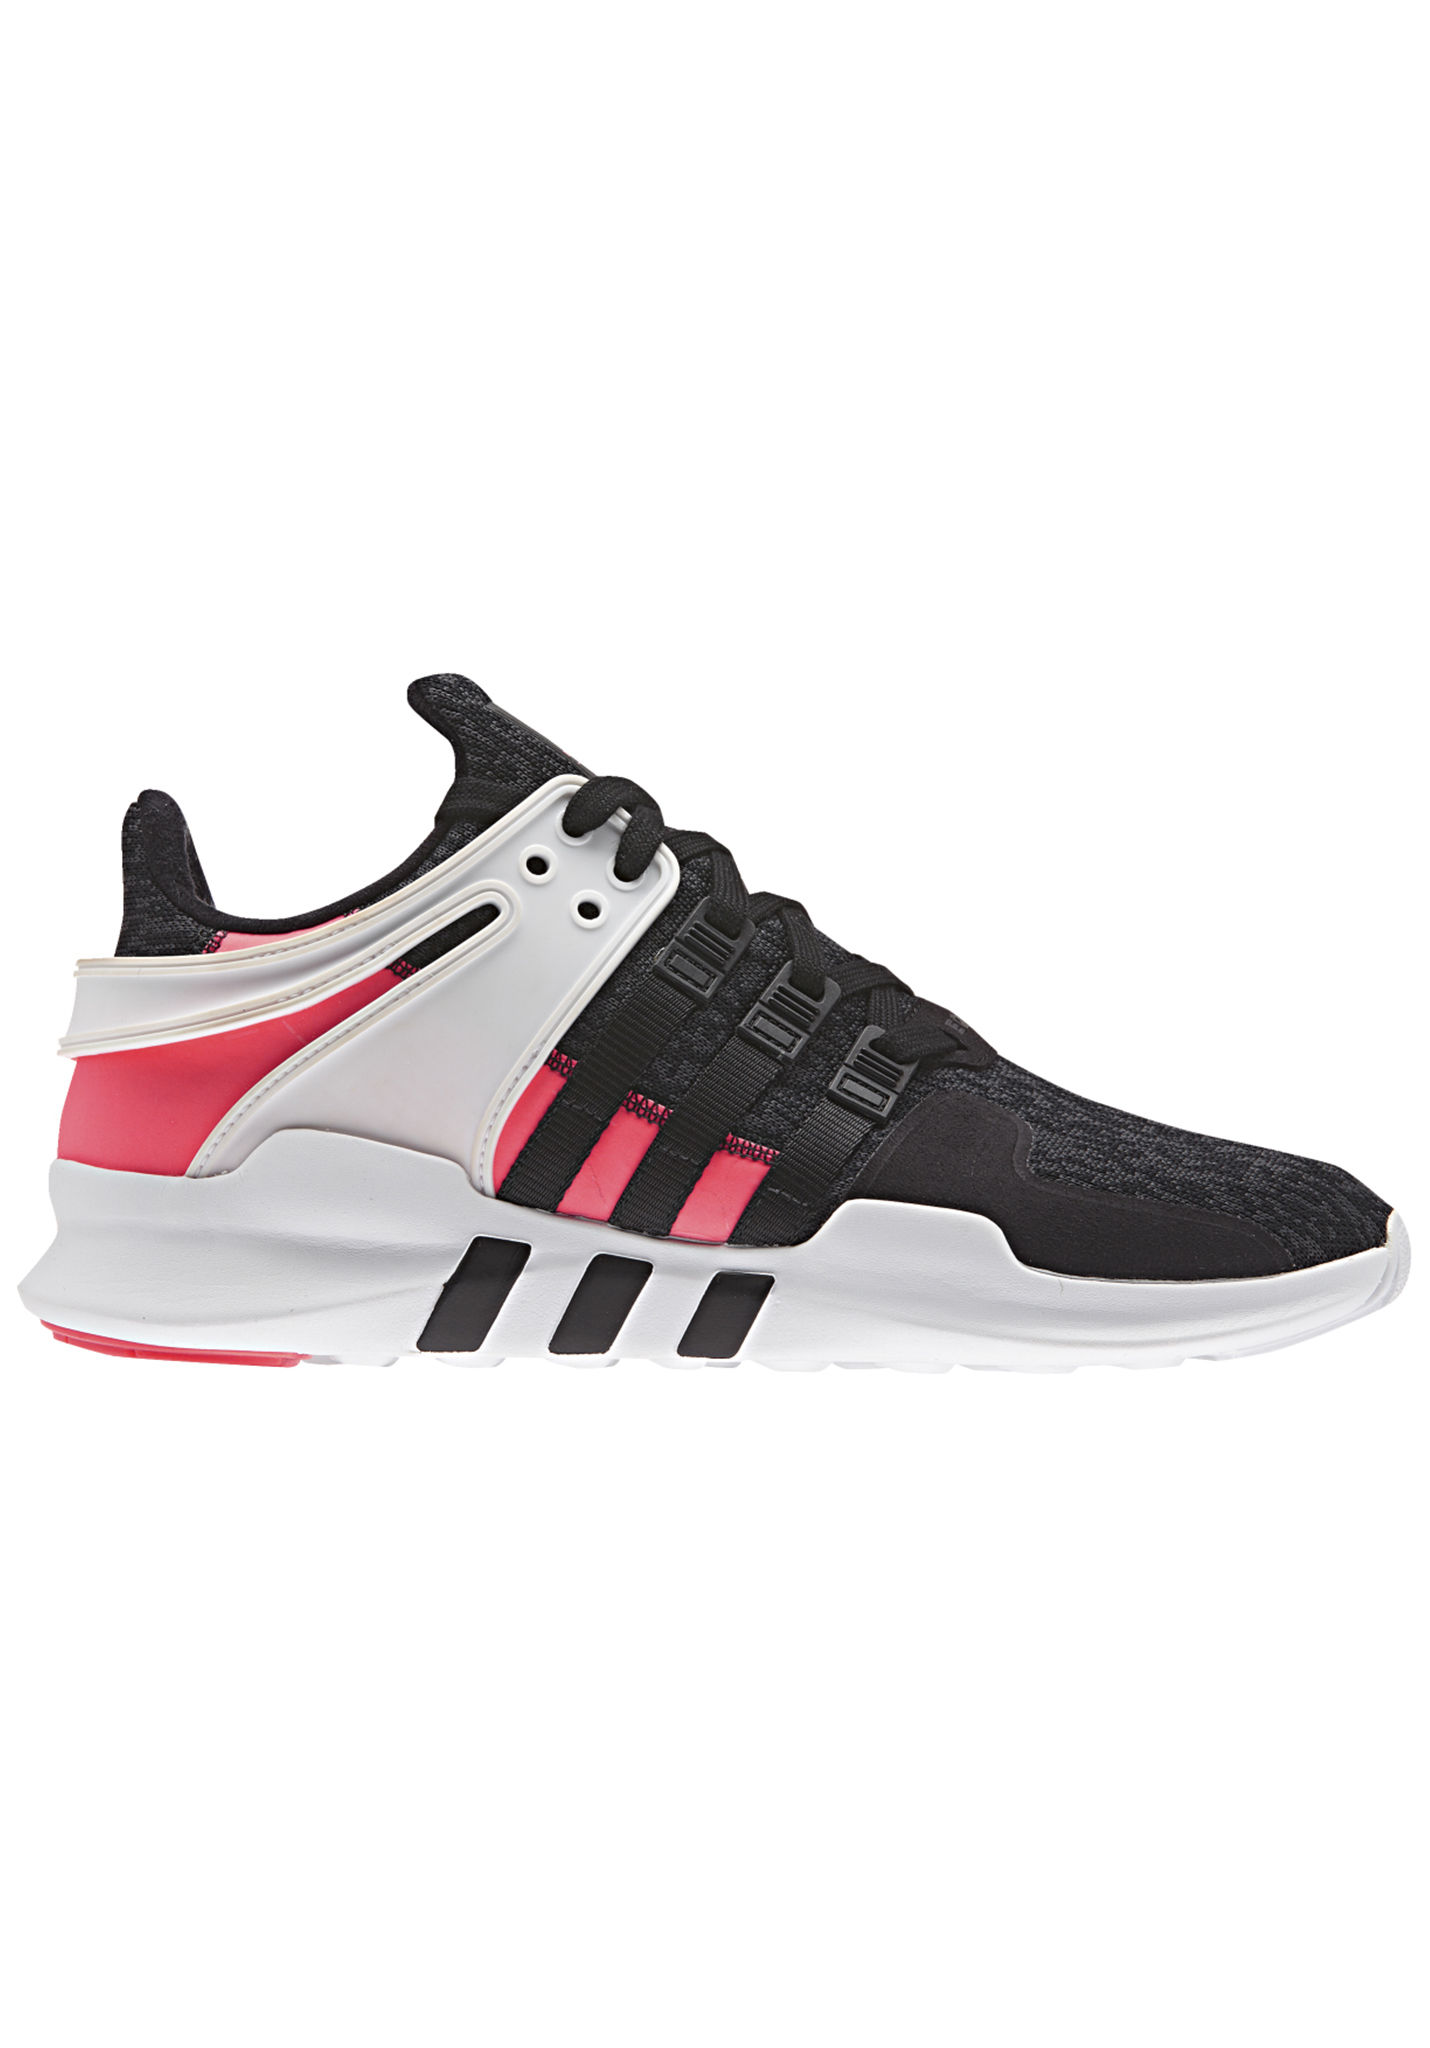 look out for low cost best sale eqt herren aerzteberater.at